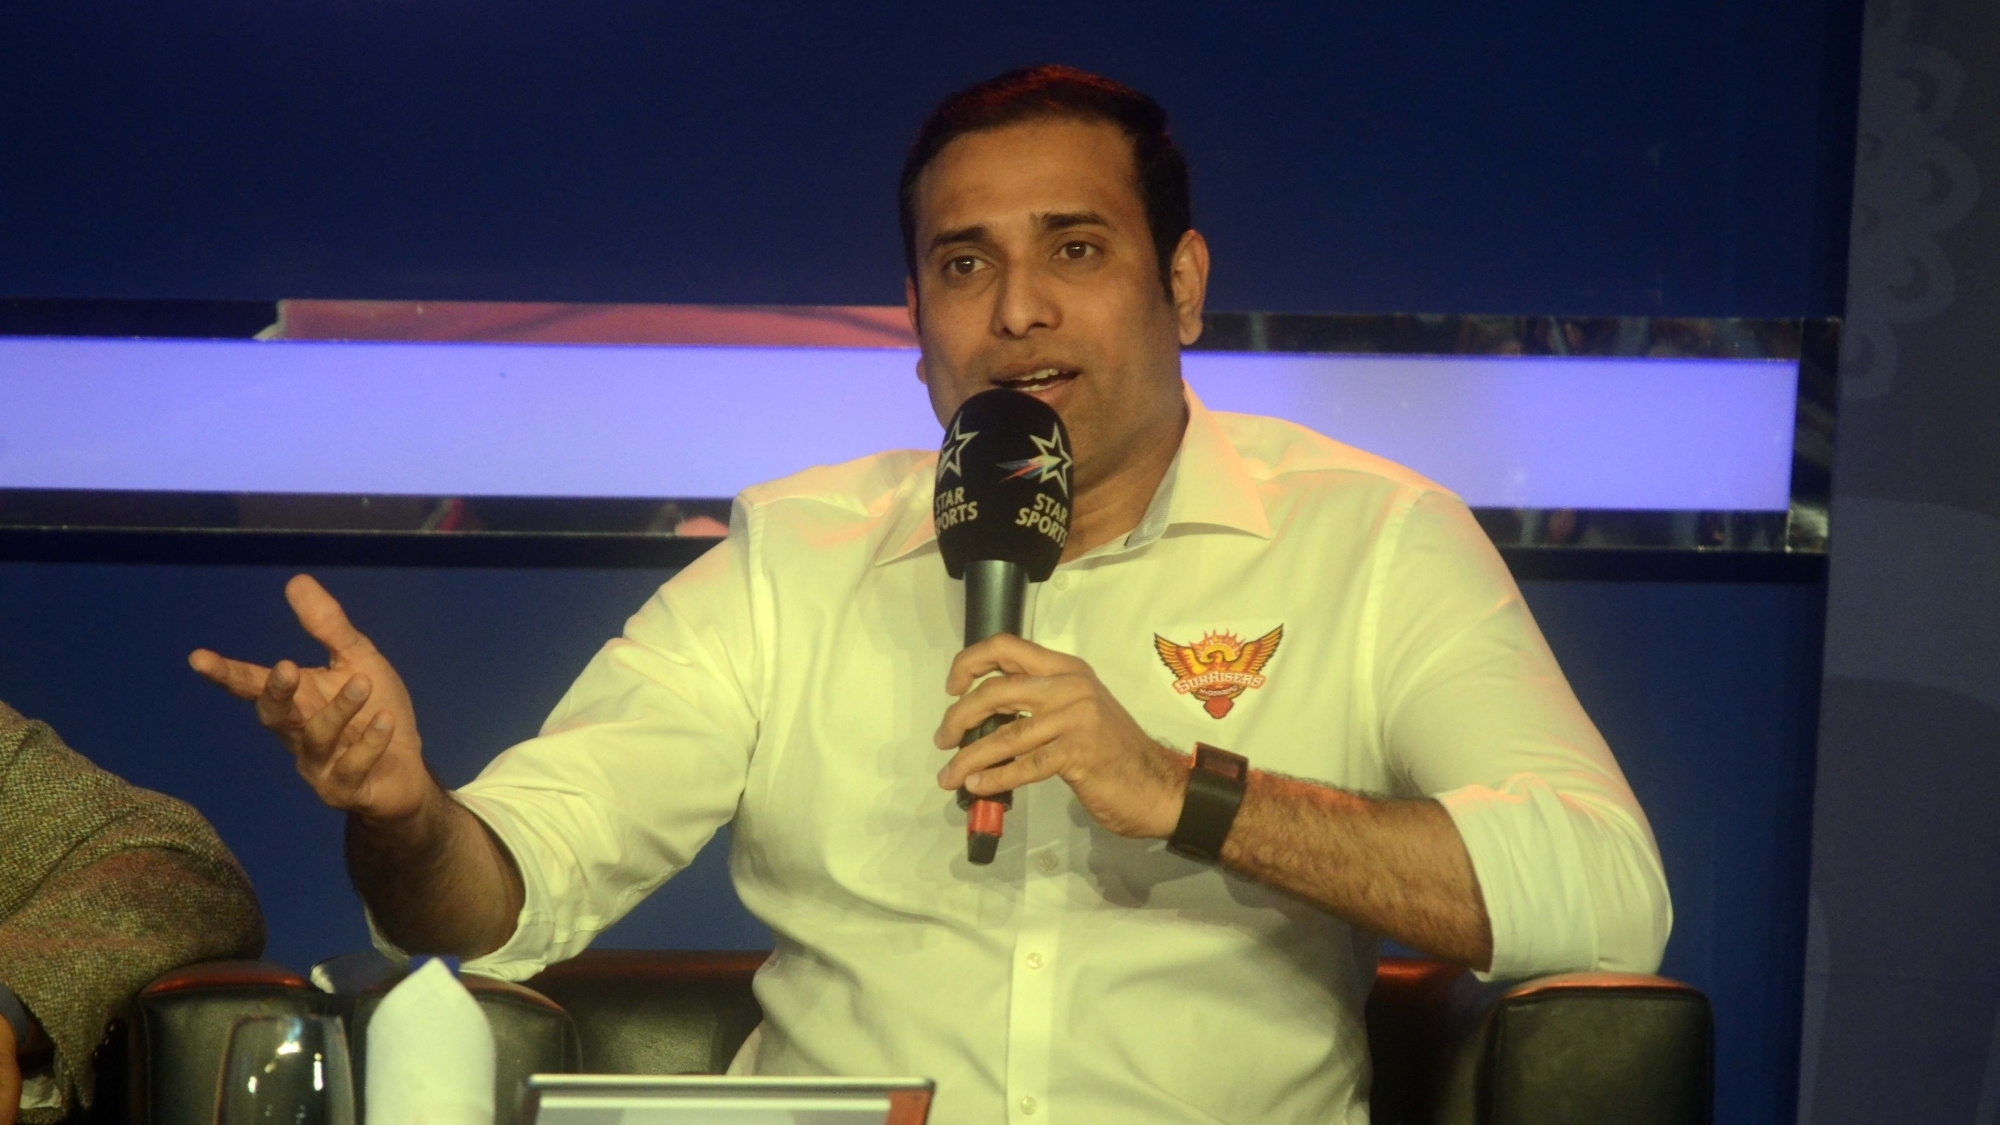 IPL 2018: SRH mentor VVS Laxman believes strong mental strength will help Hyderabad in the playoffs